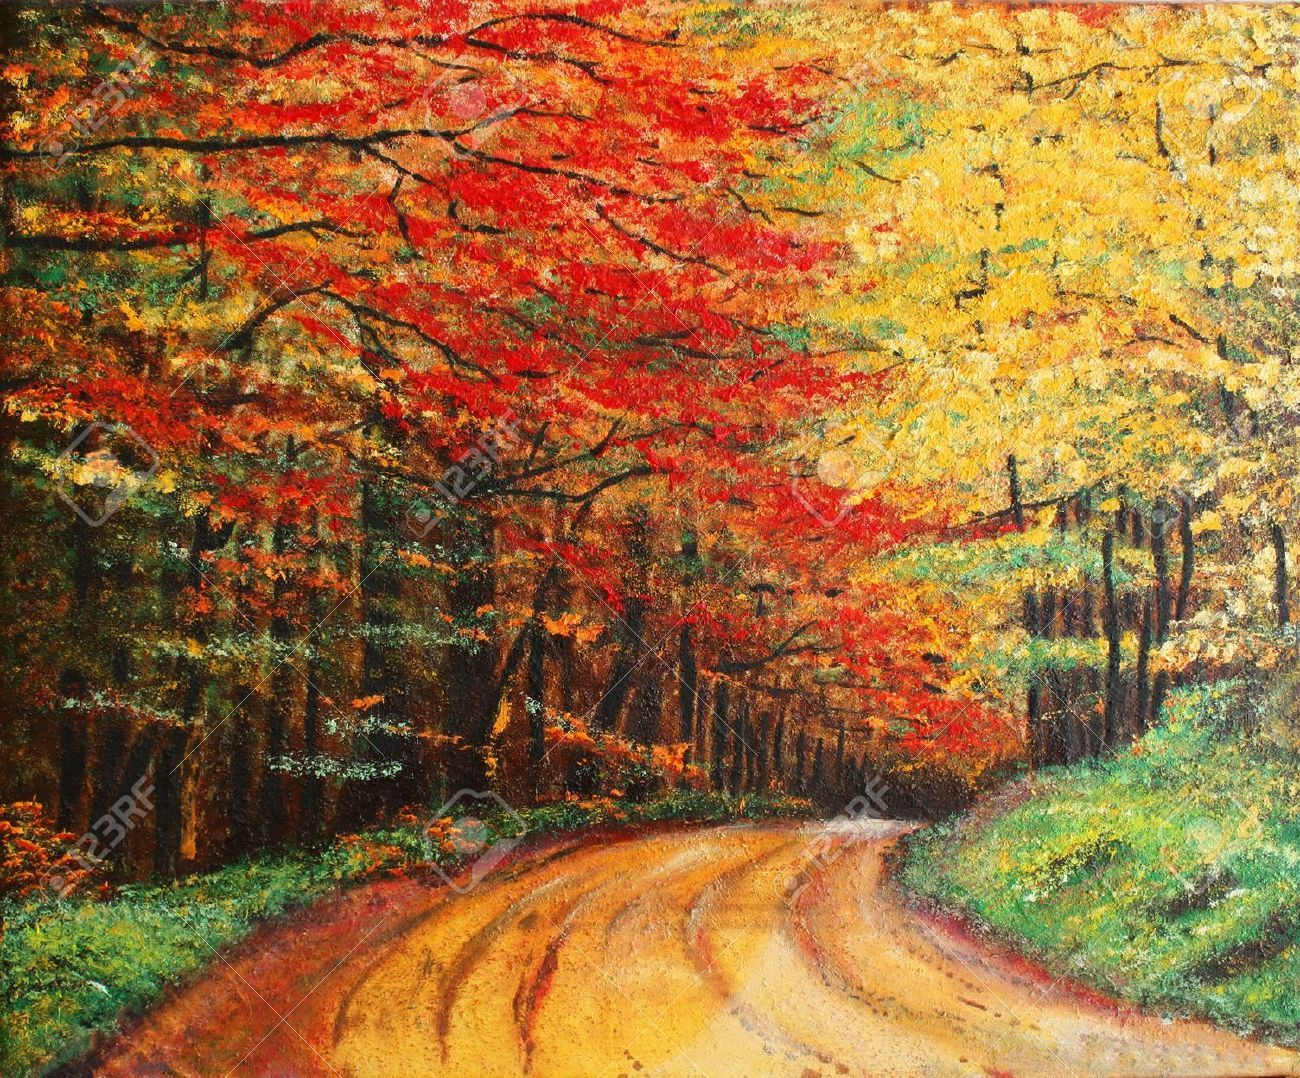 6361703-Colourfull-original-oil-painting-showing-a-road-forest-Stock-Photo.jpg (1300×1078)